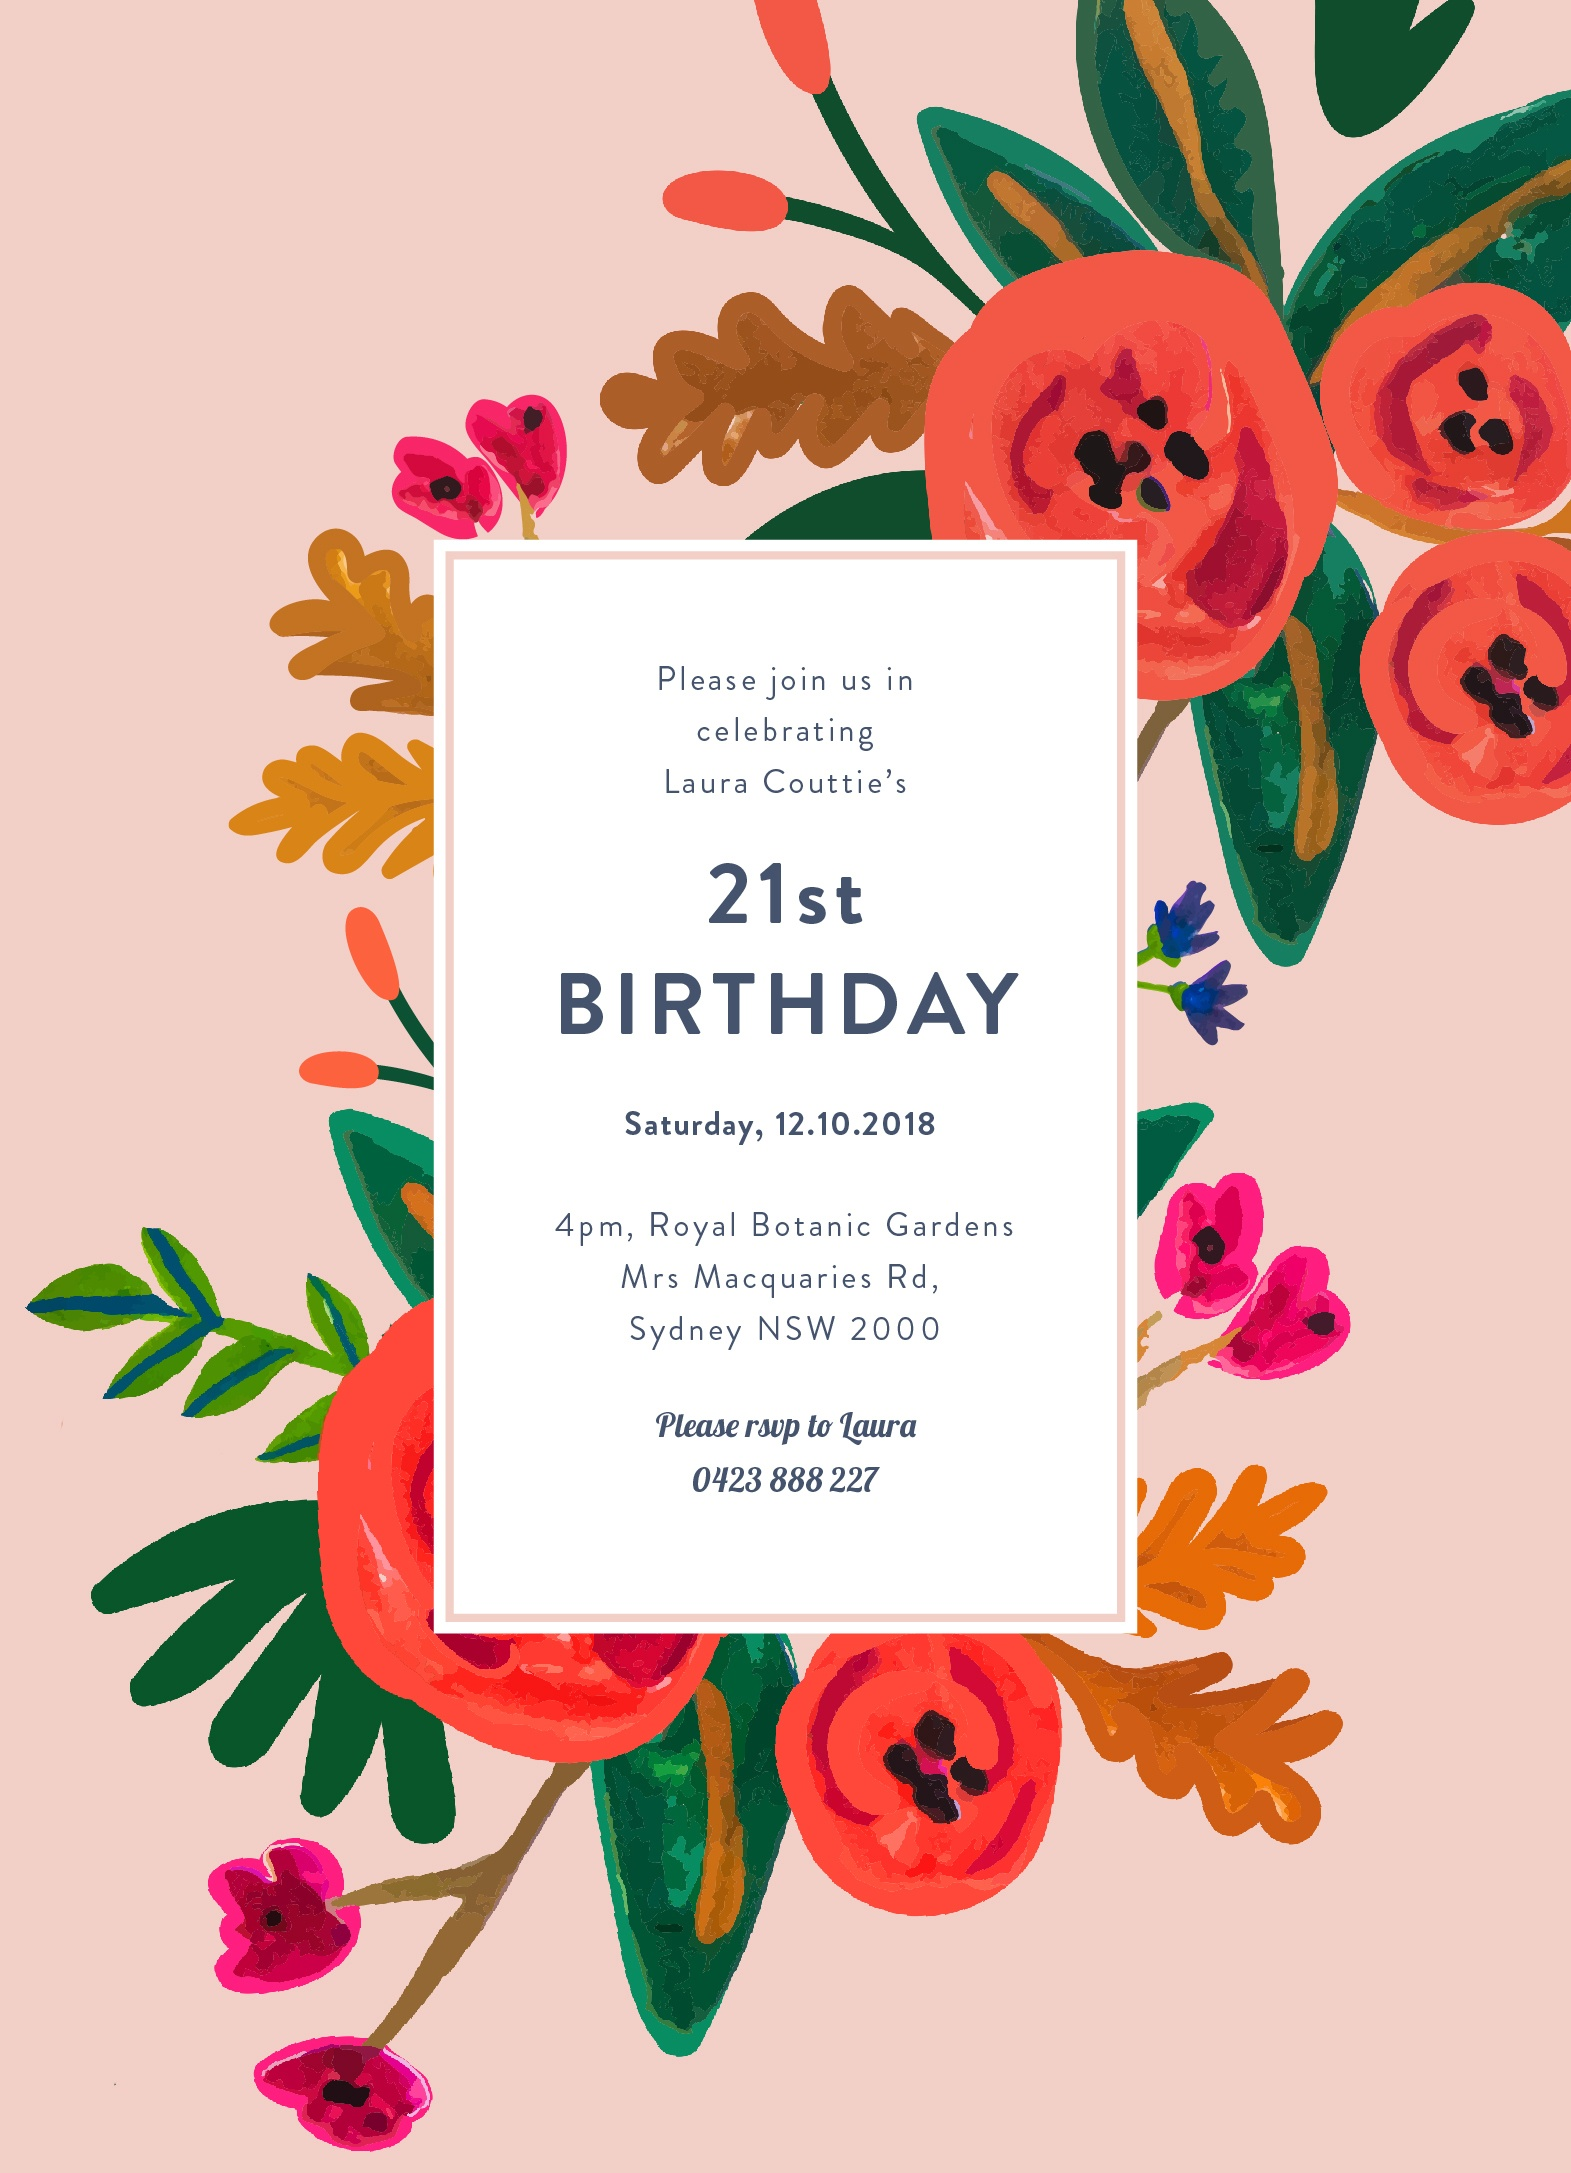 Birthday Party Invitations   Customize And Print Online - Paperlust - Make Your Own Birthday Party Invitations Free Printable